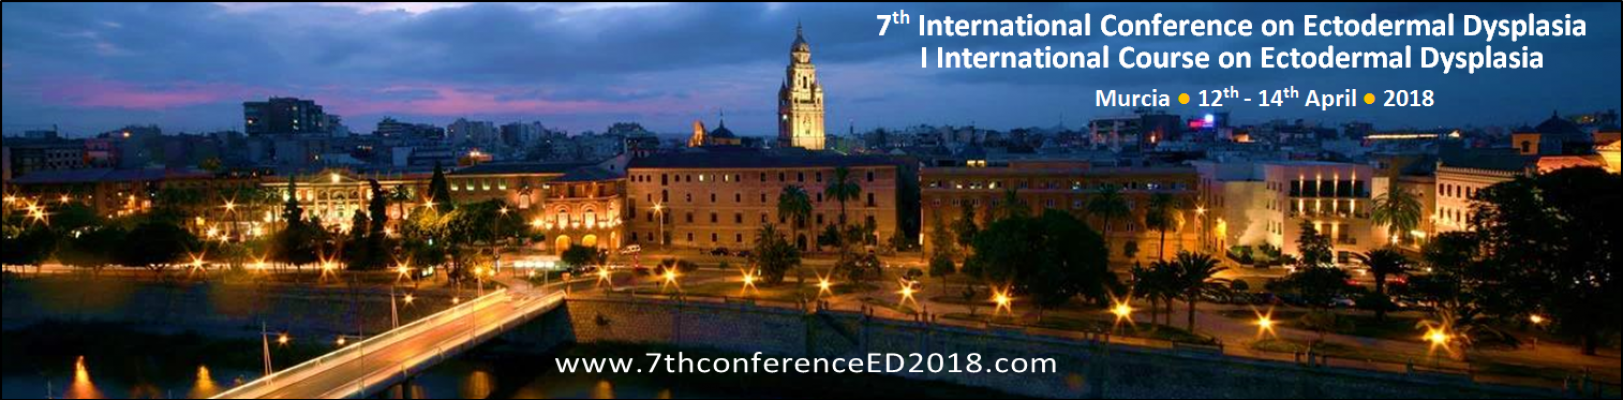 7th International Conference on Ectodermal Dysplasia